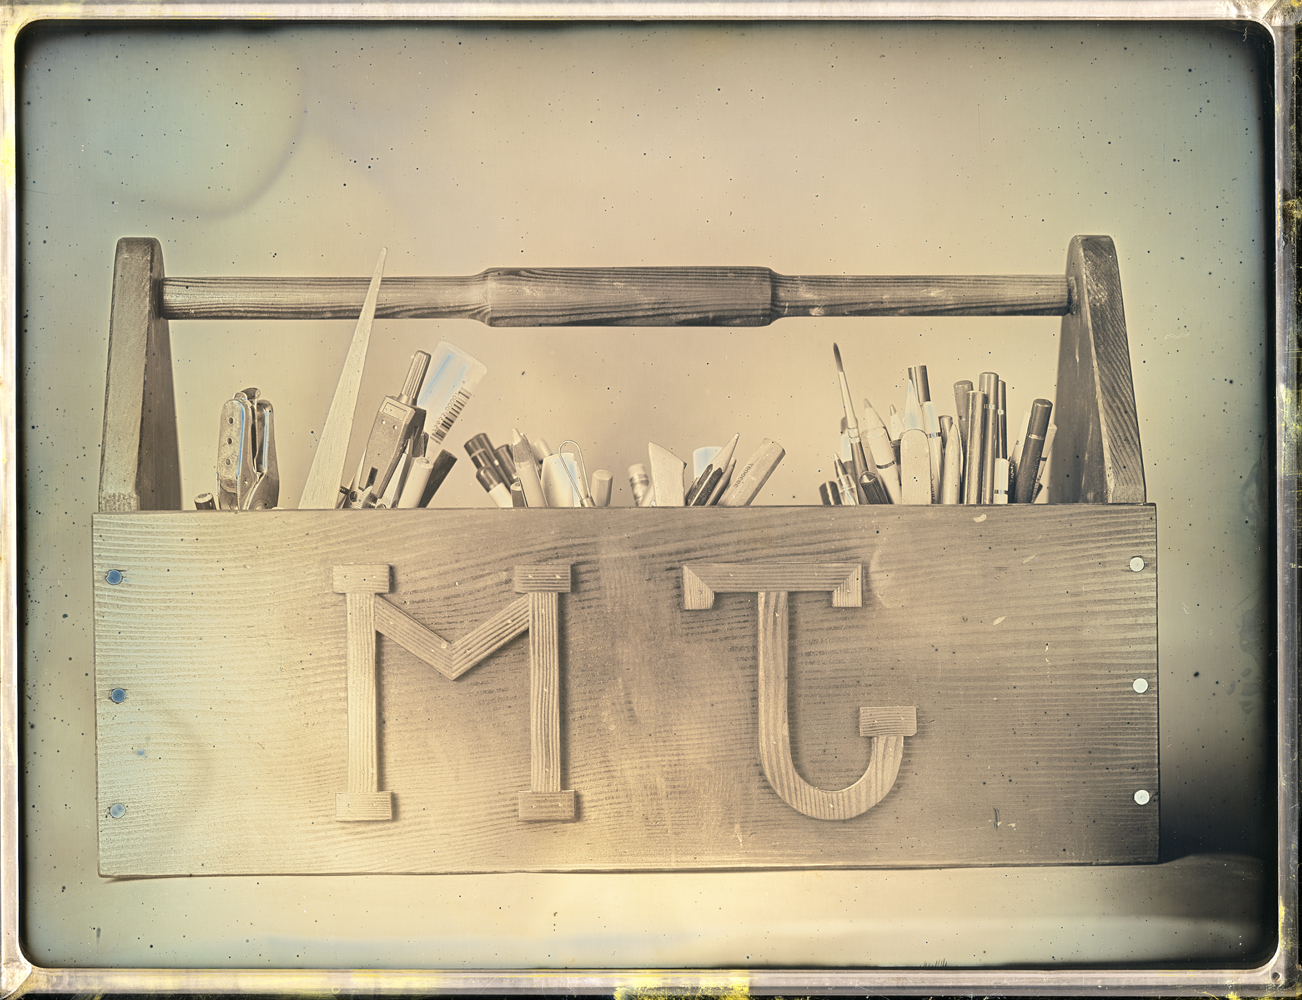 Daniel Carrillo, Jeffry Mitchell's Toolbox, 2017, daguerreotype, 6.5 x 8.5 inches, framed, $3000.